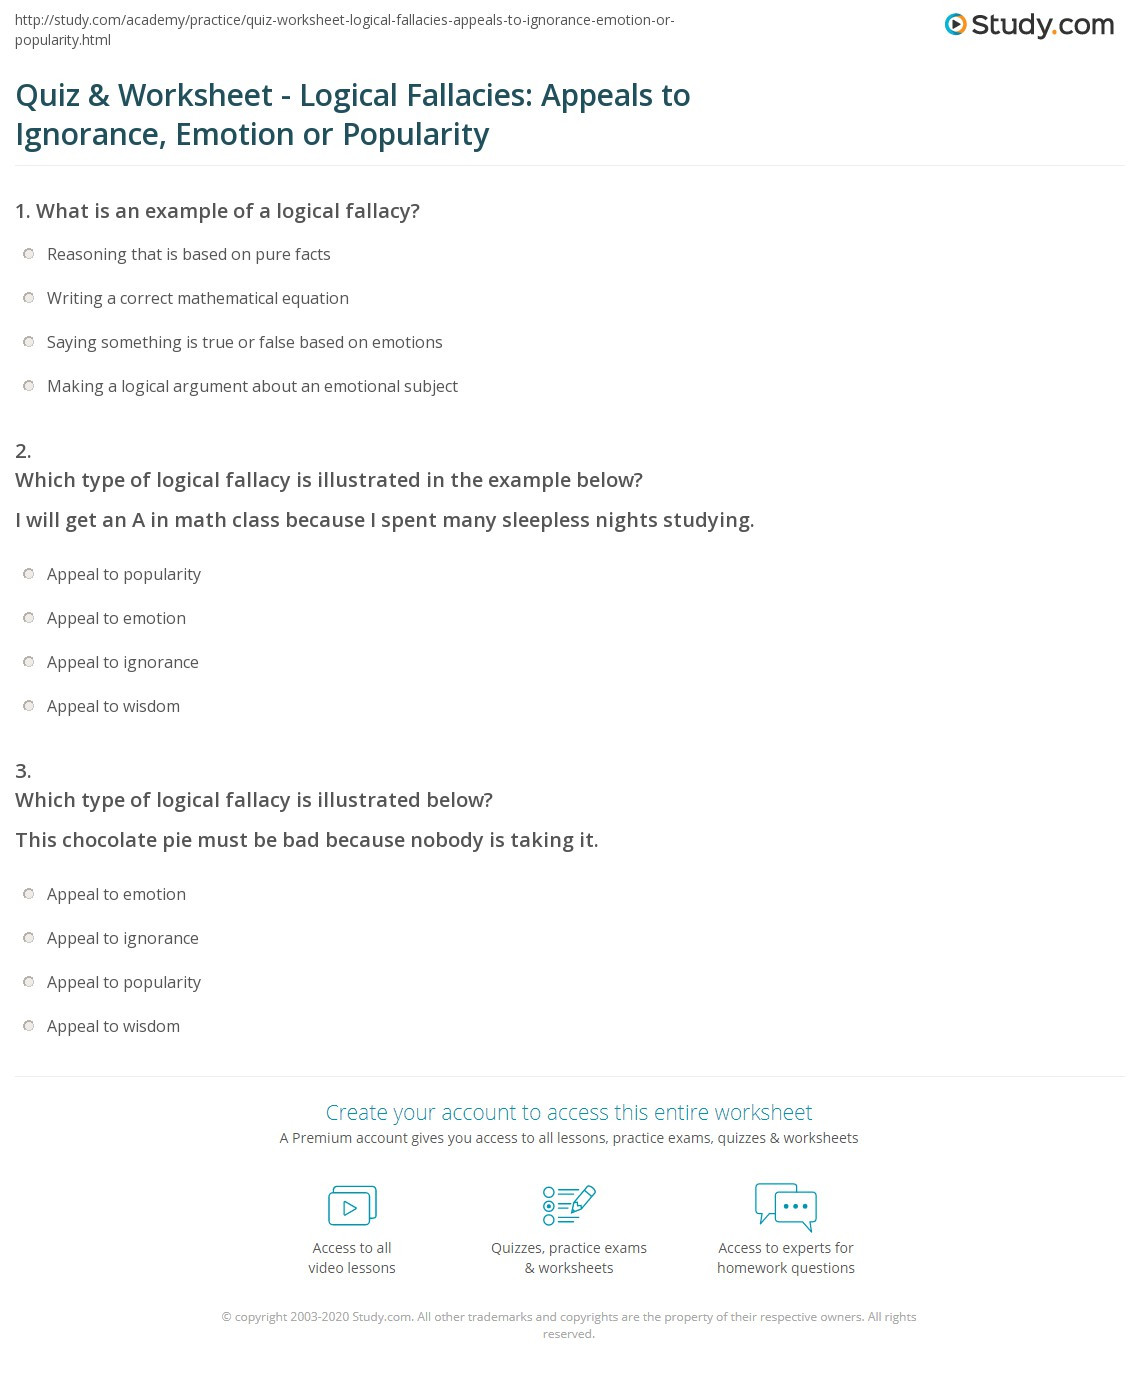 Logical Fallacies Worksheet with Answers Quiz & Worksheet Logical Fallacies Appeals to Ignorance